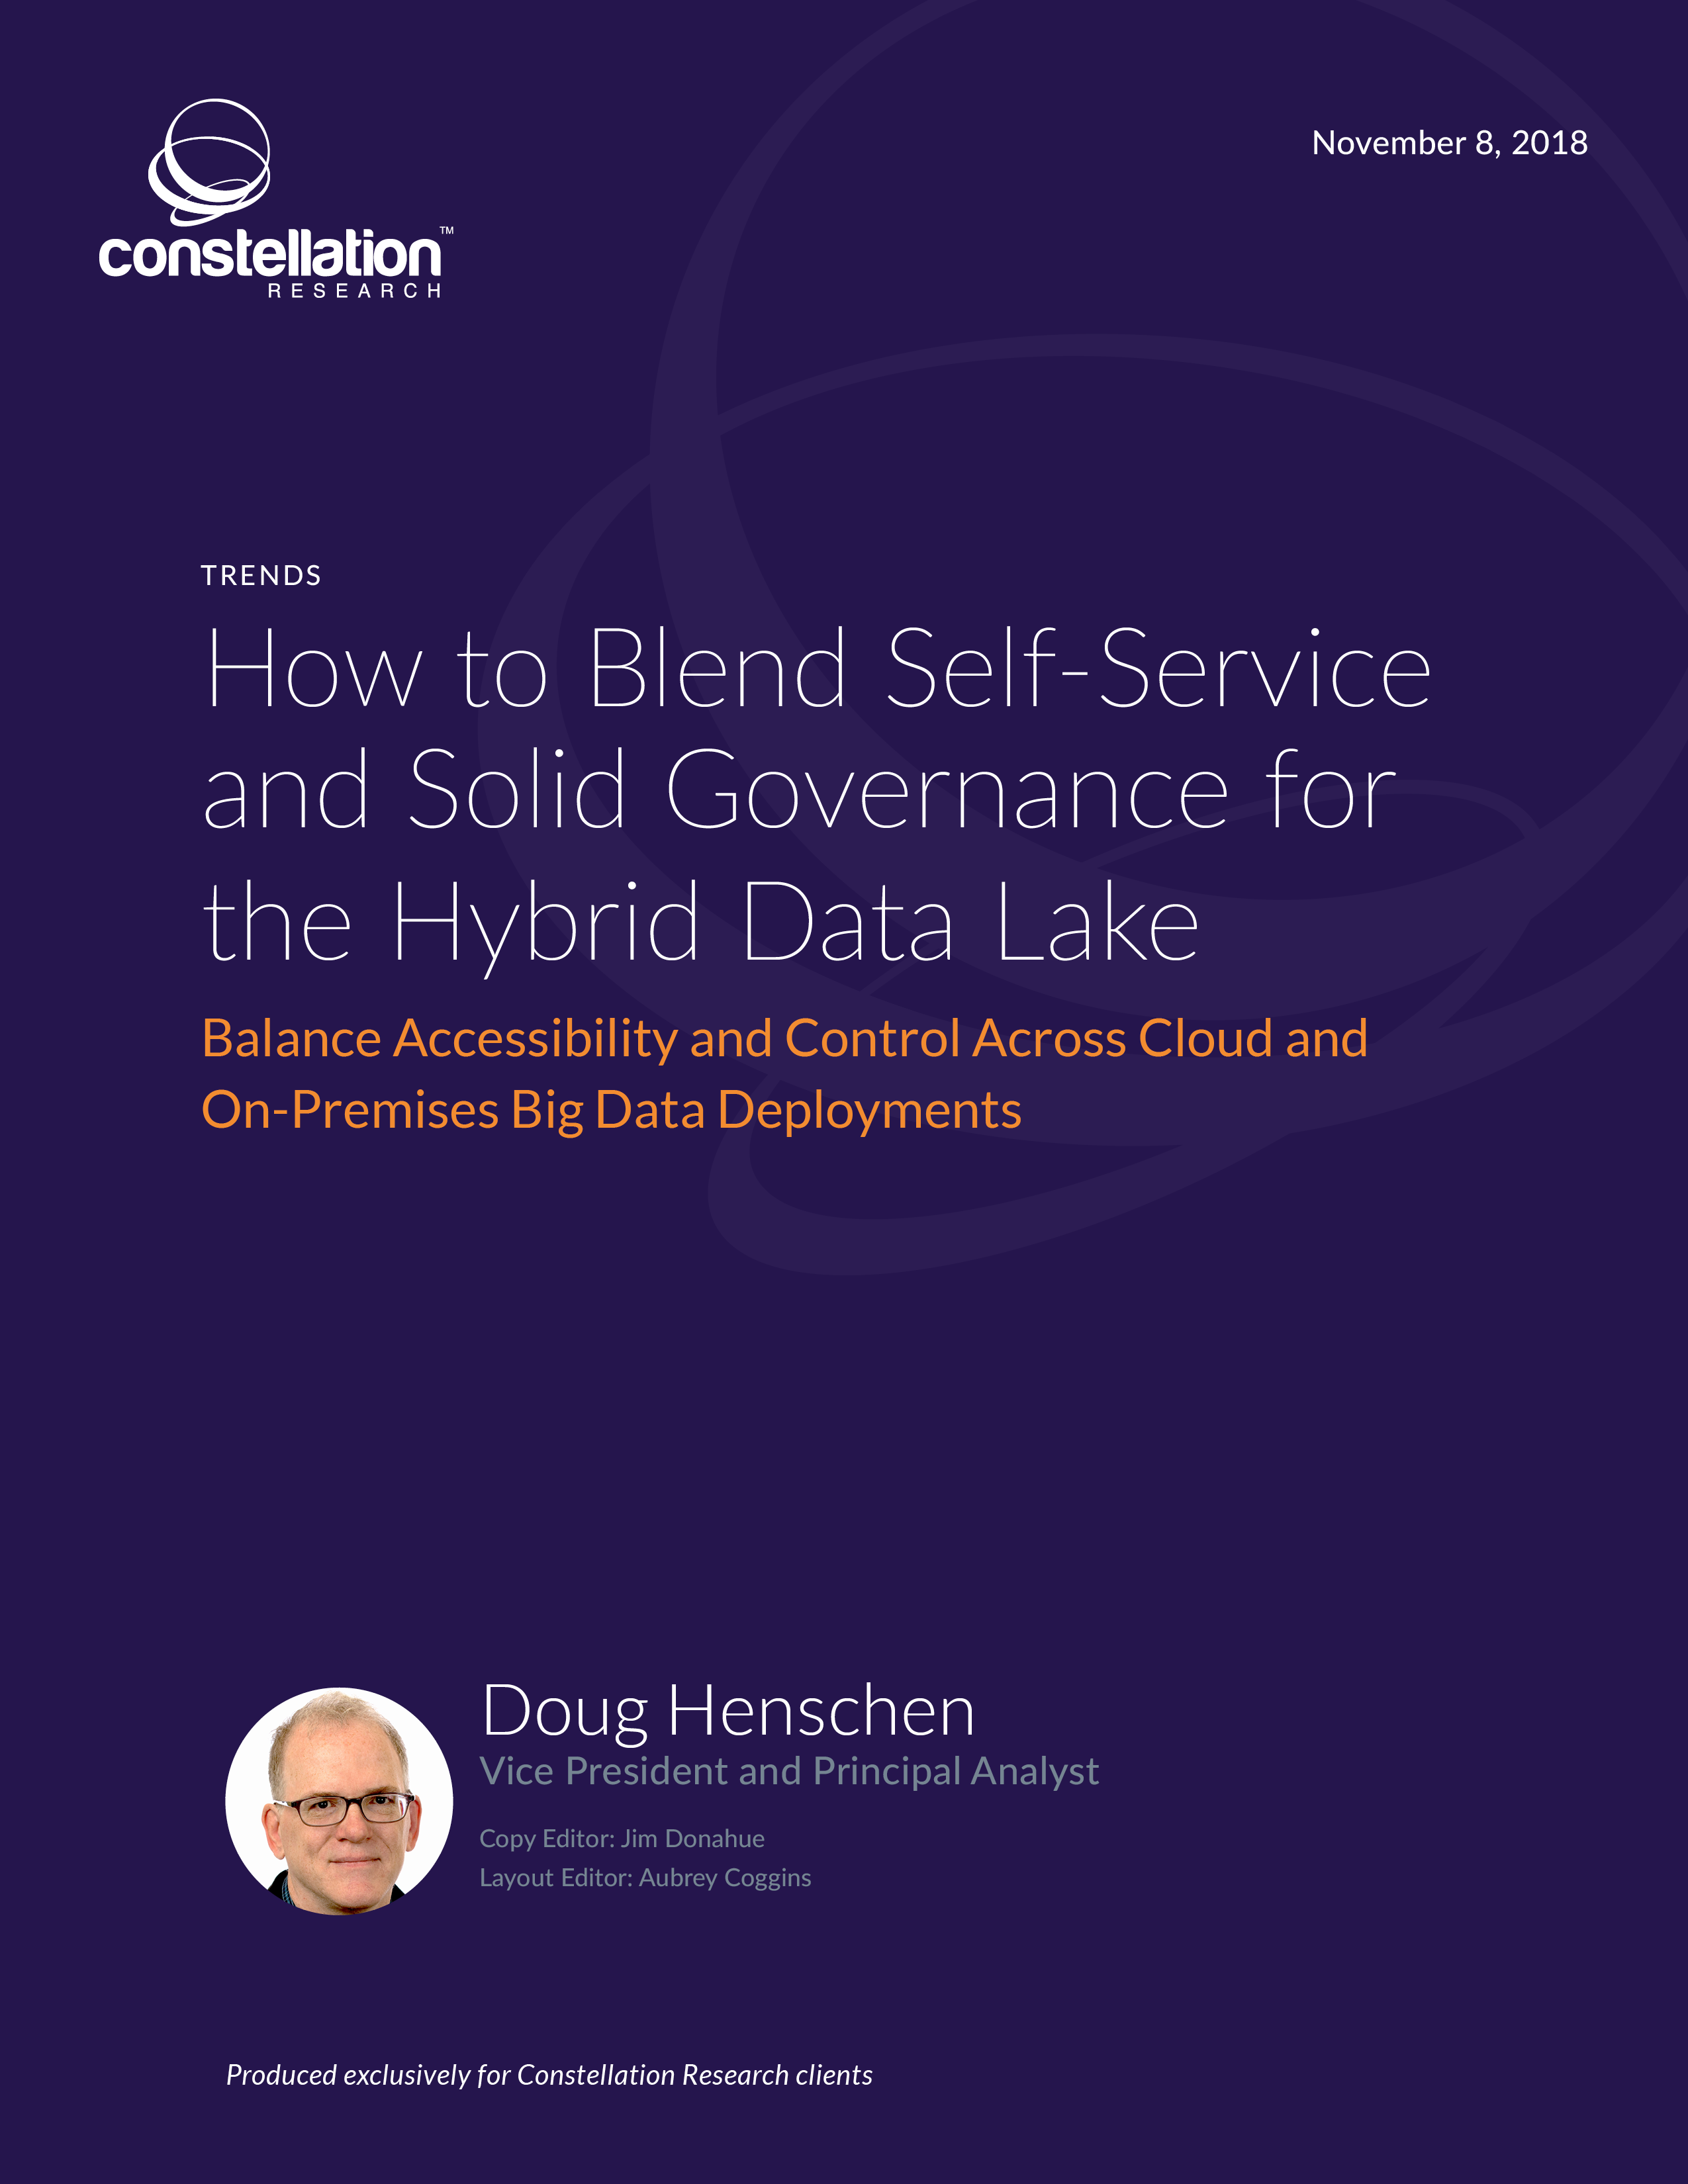 How to Blend Self-Service and Solid Governance for the Hybrid Data Lake